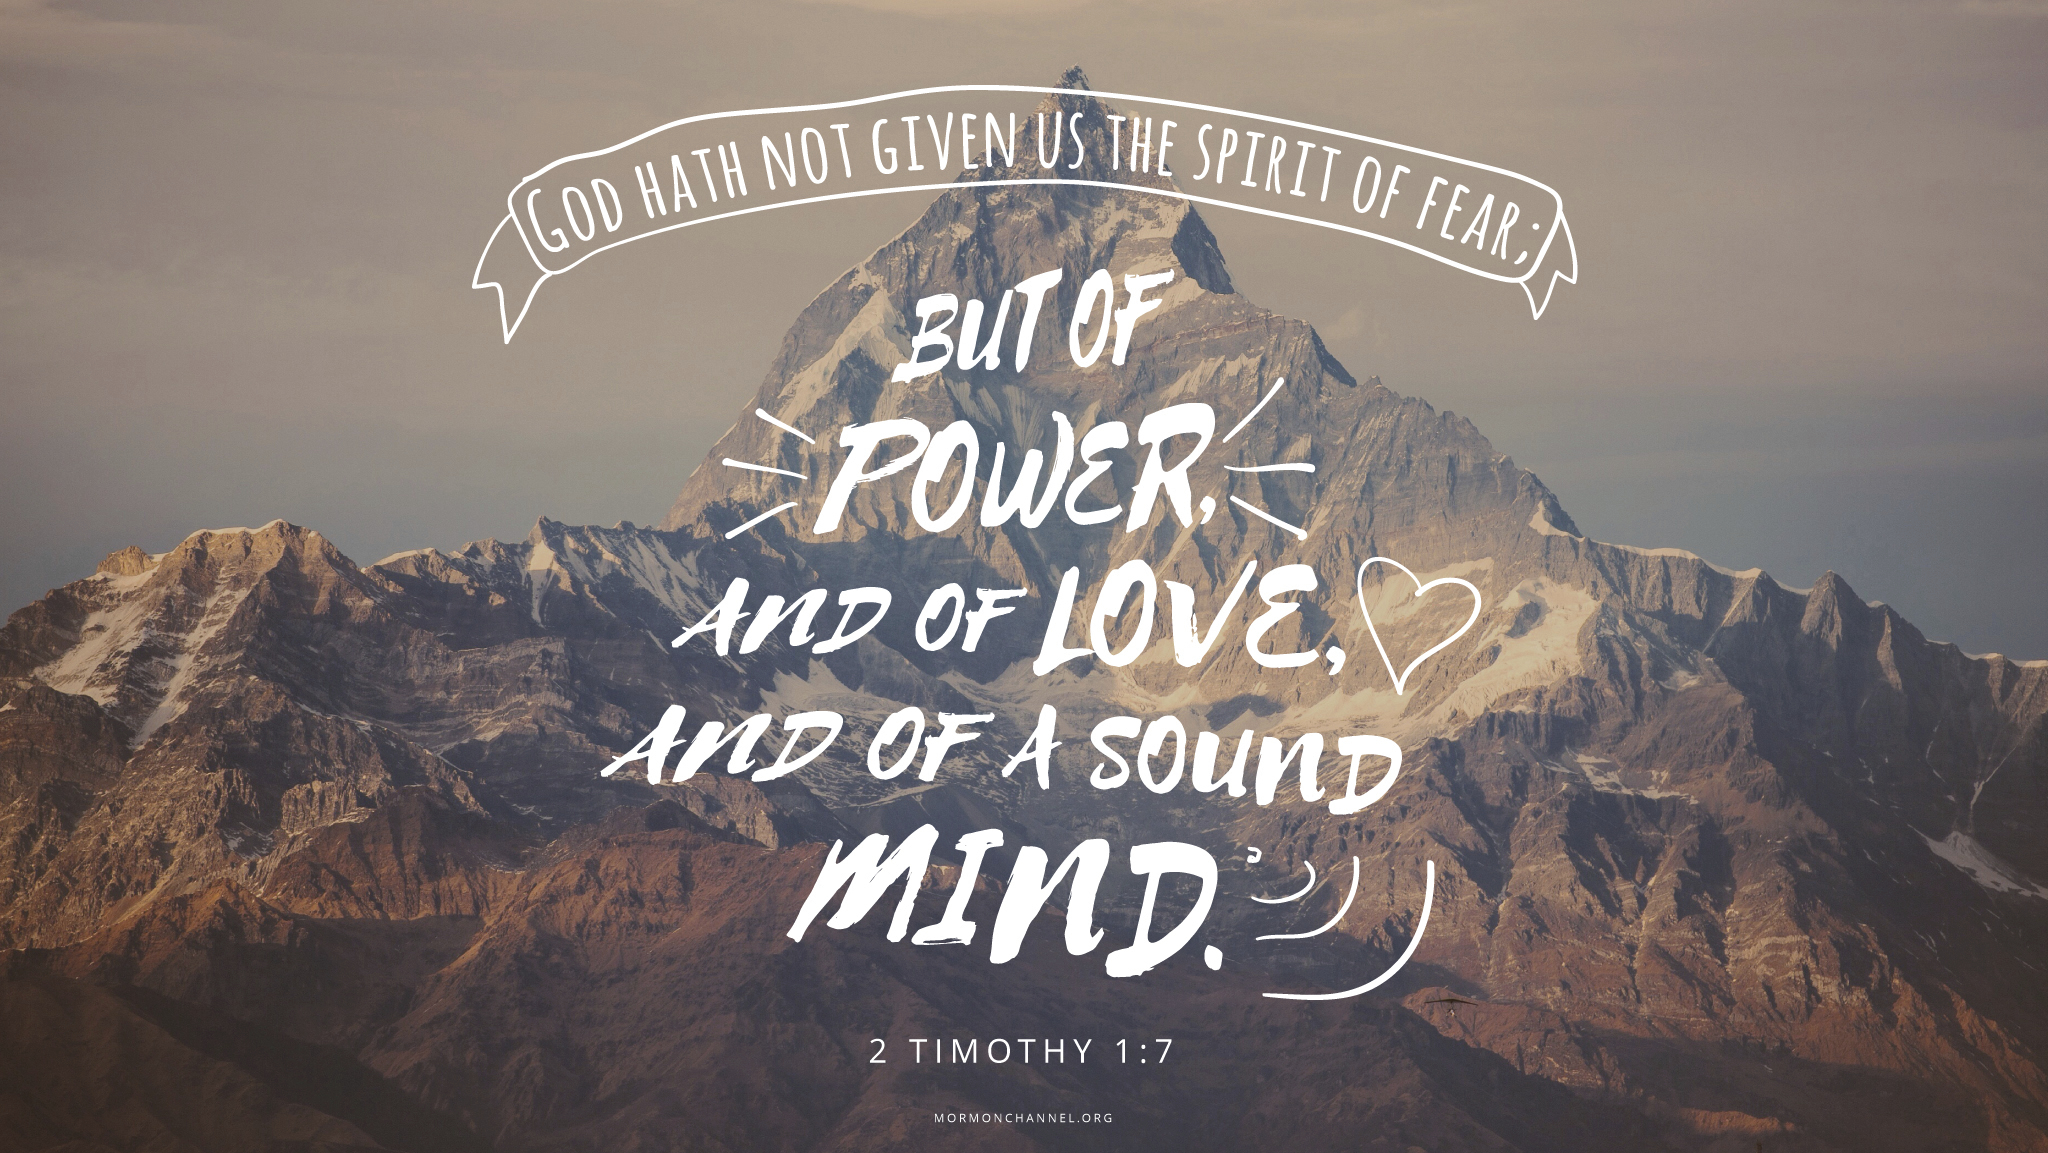 """""""God hath not given us the spirit of fear; but of power, and of love, and of a sound mind.""""—2 Timothy 1:7"""